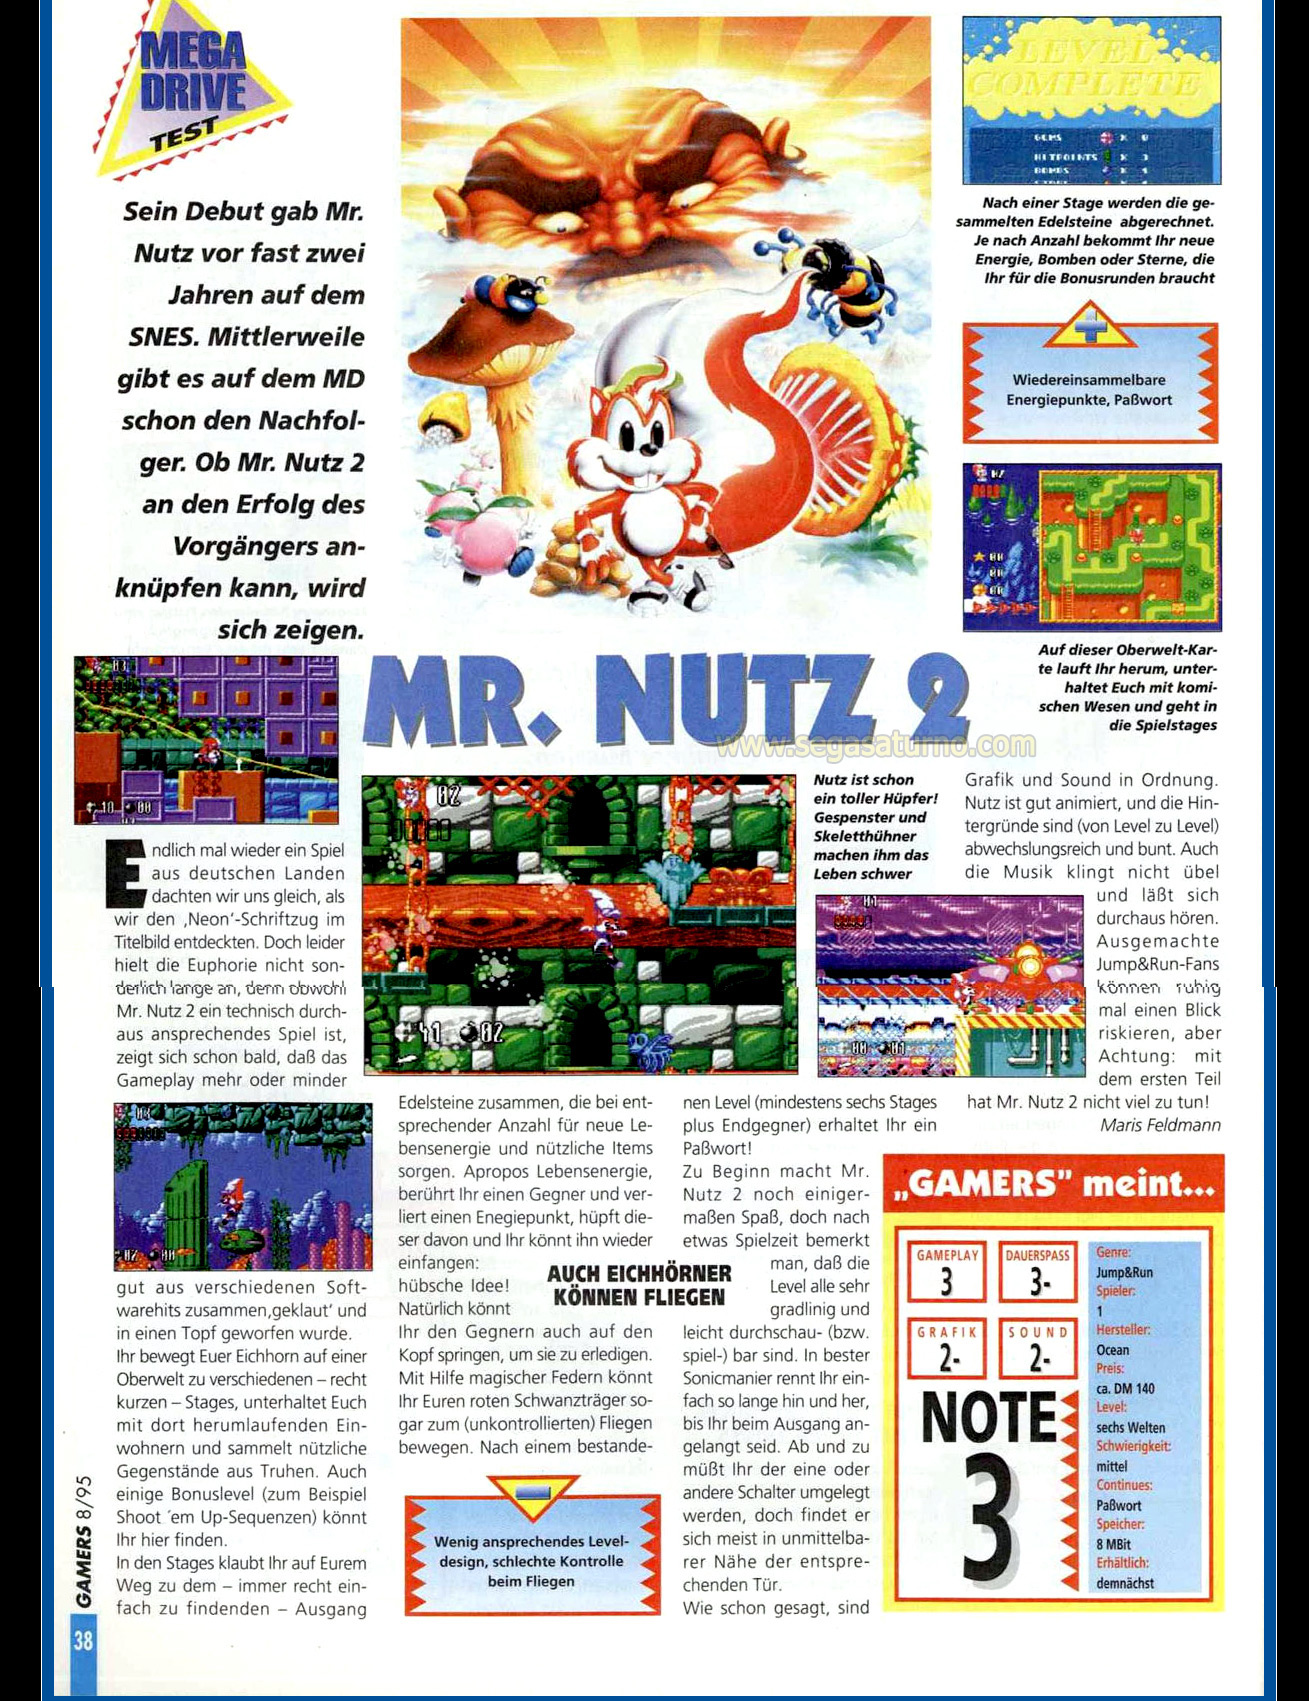 mr_nutz_2_megadrive